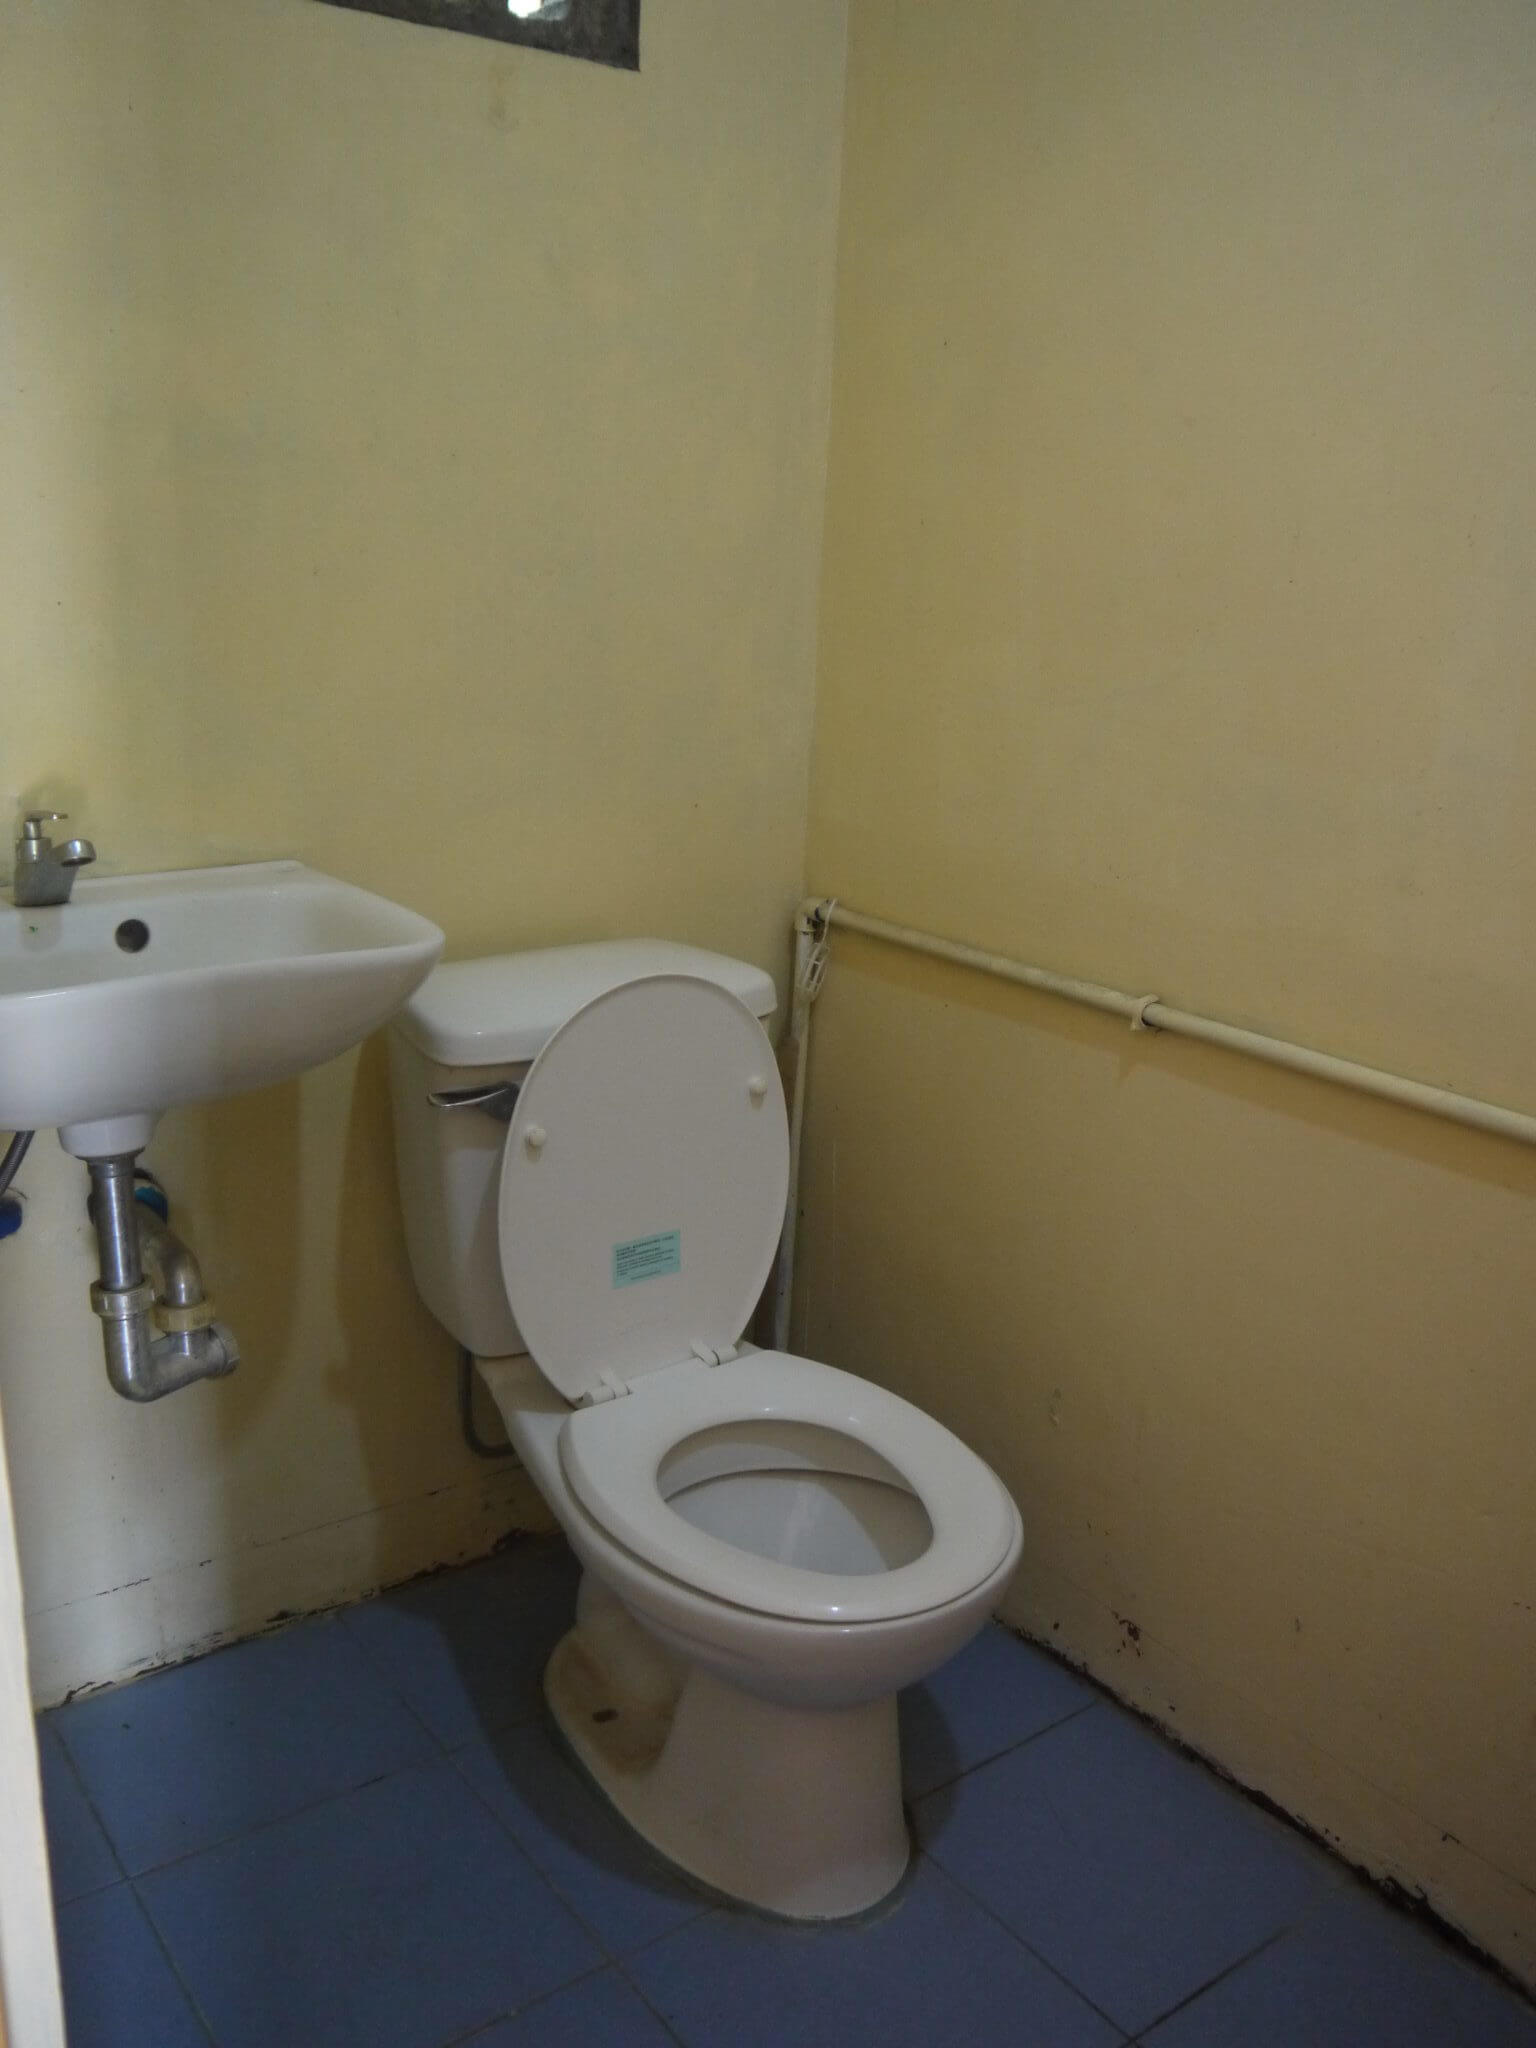 western style toilets